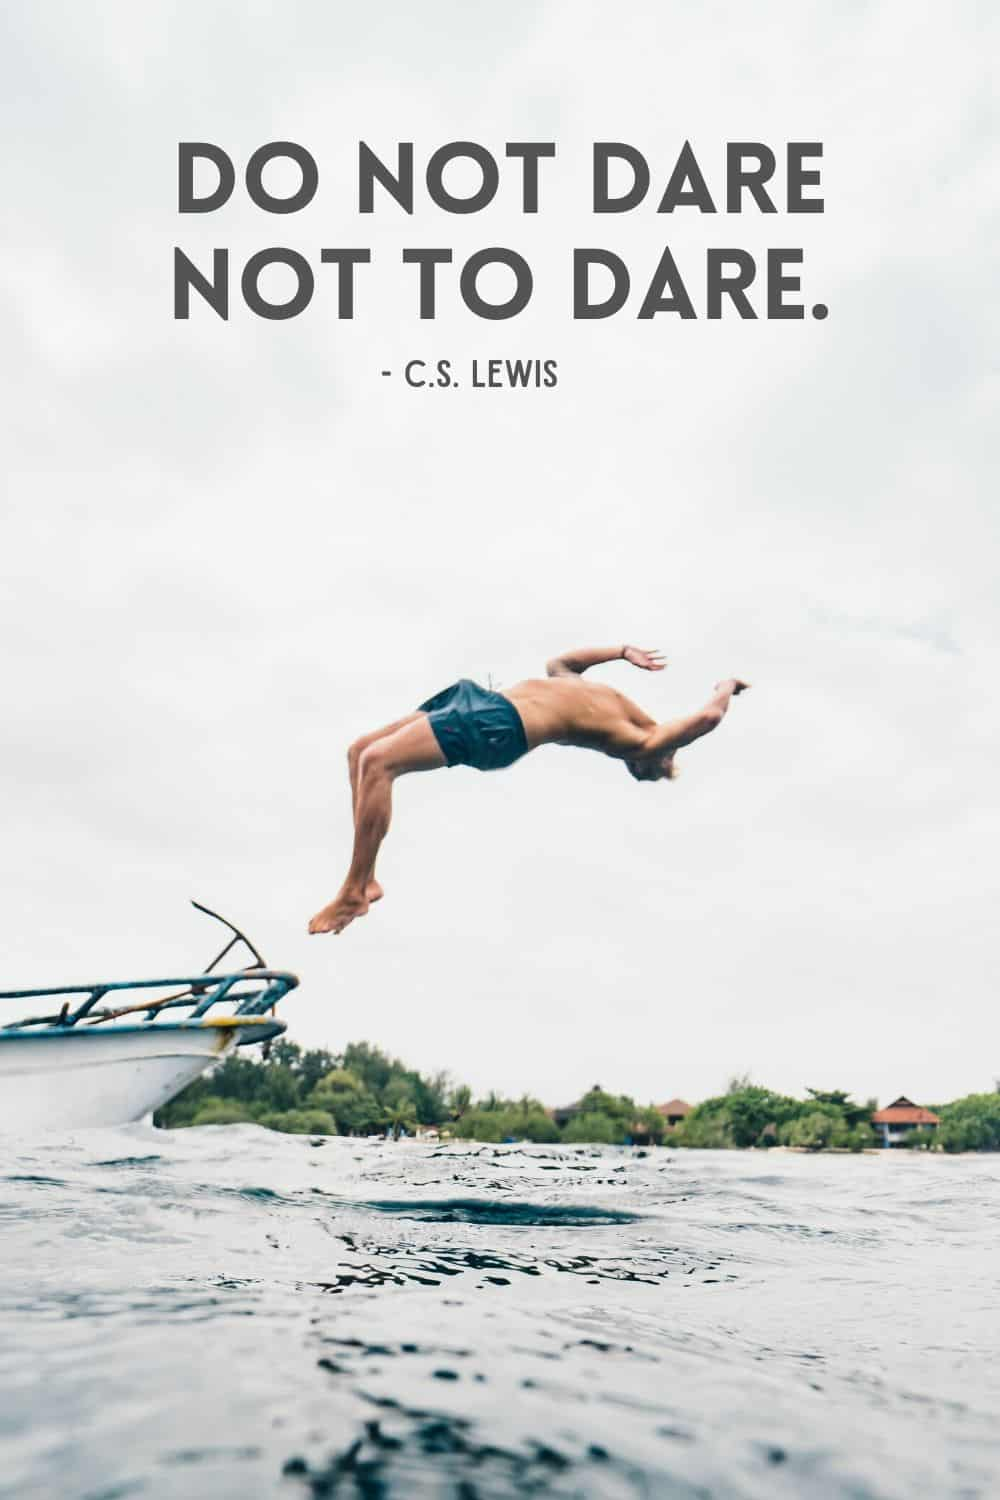 Do not dare not to dare. - Wanderlust Quotes - Pinterest Post